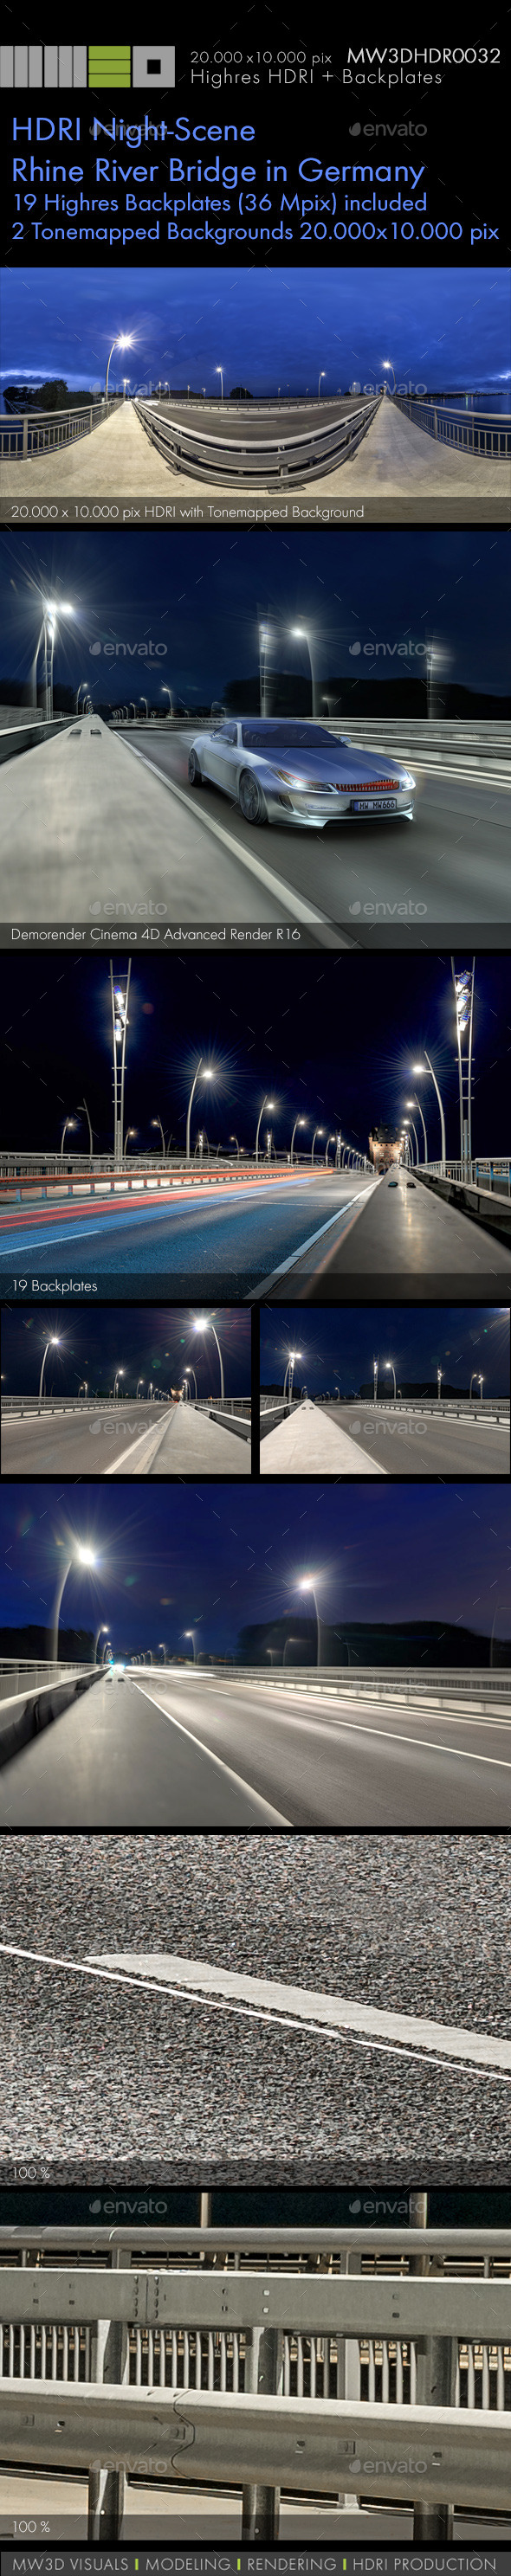 MW3DHDR0032 HDRI Night-Scene Rhine River Bridge - 3DOcean Item for Sale